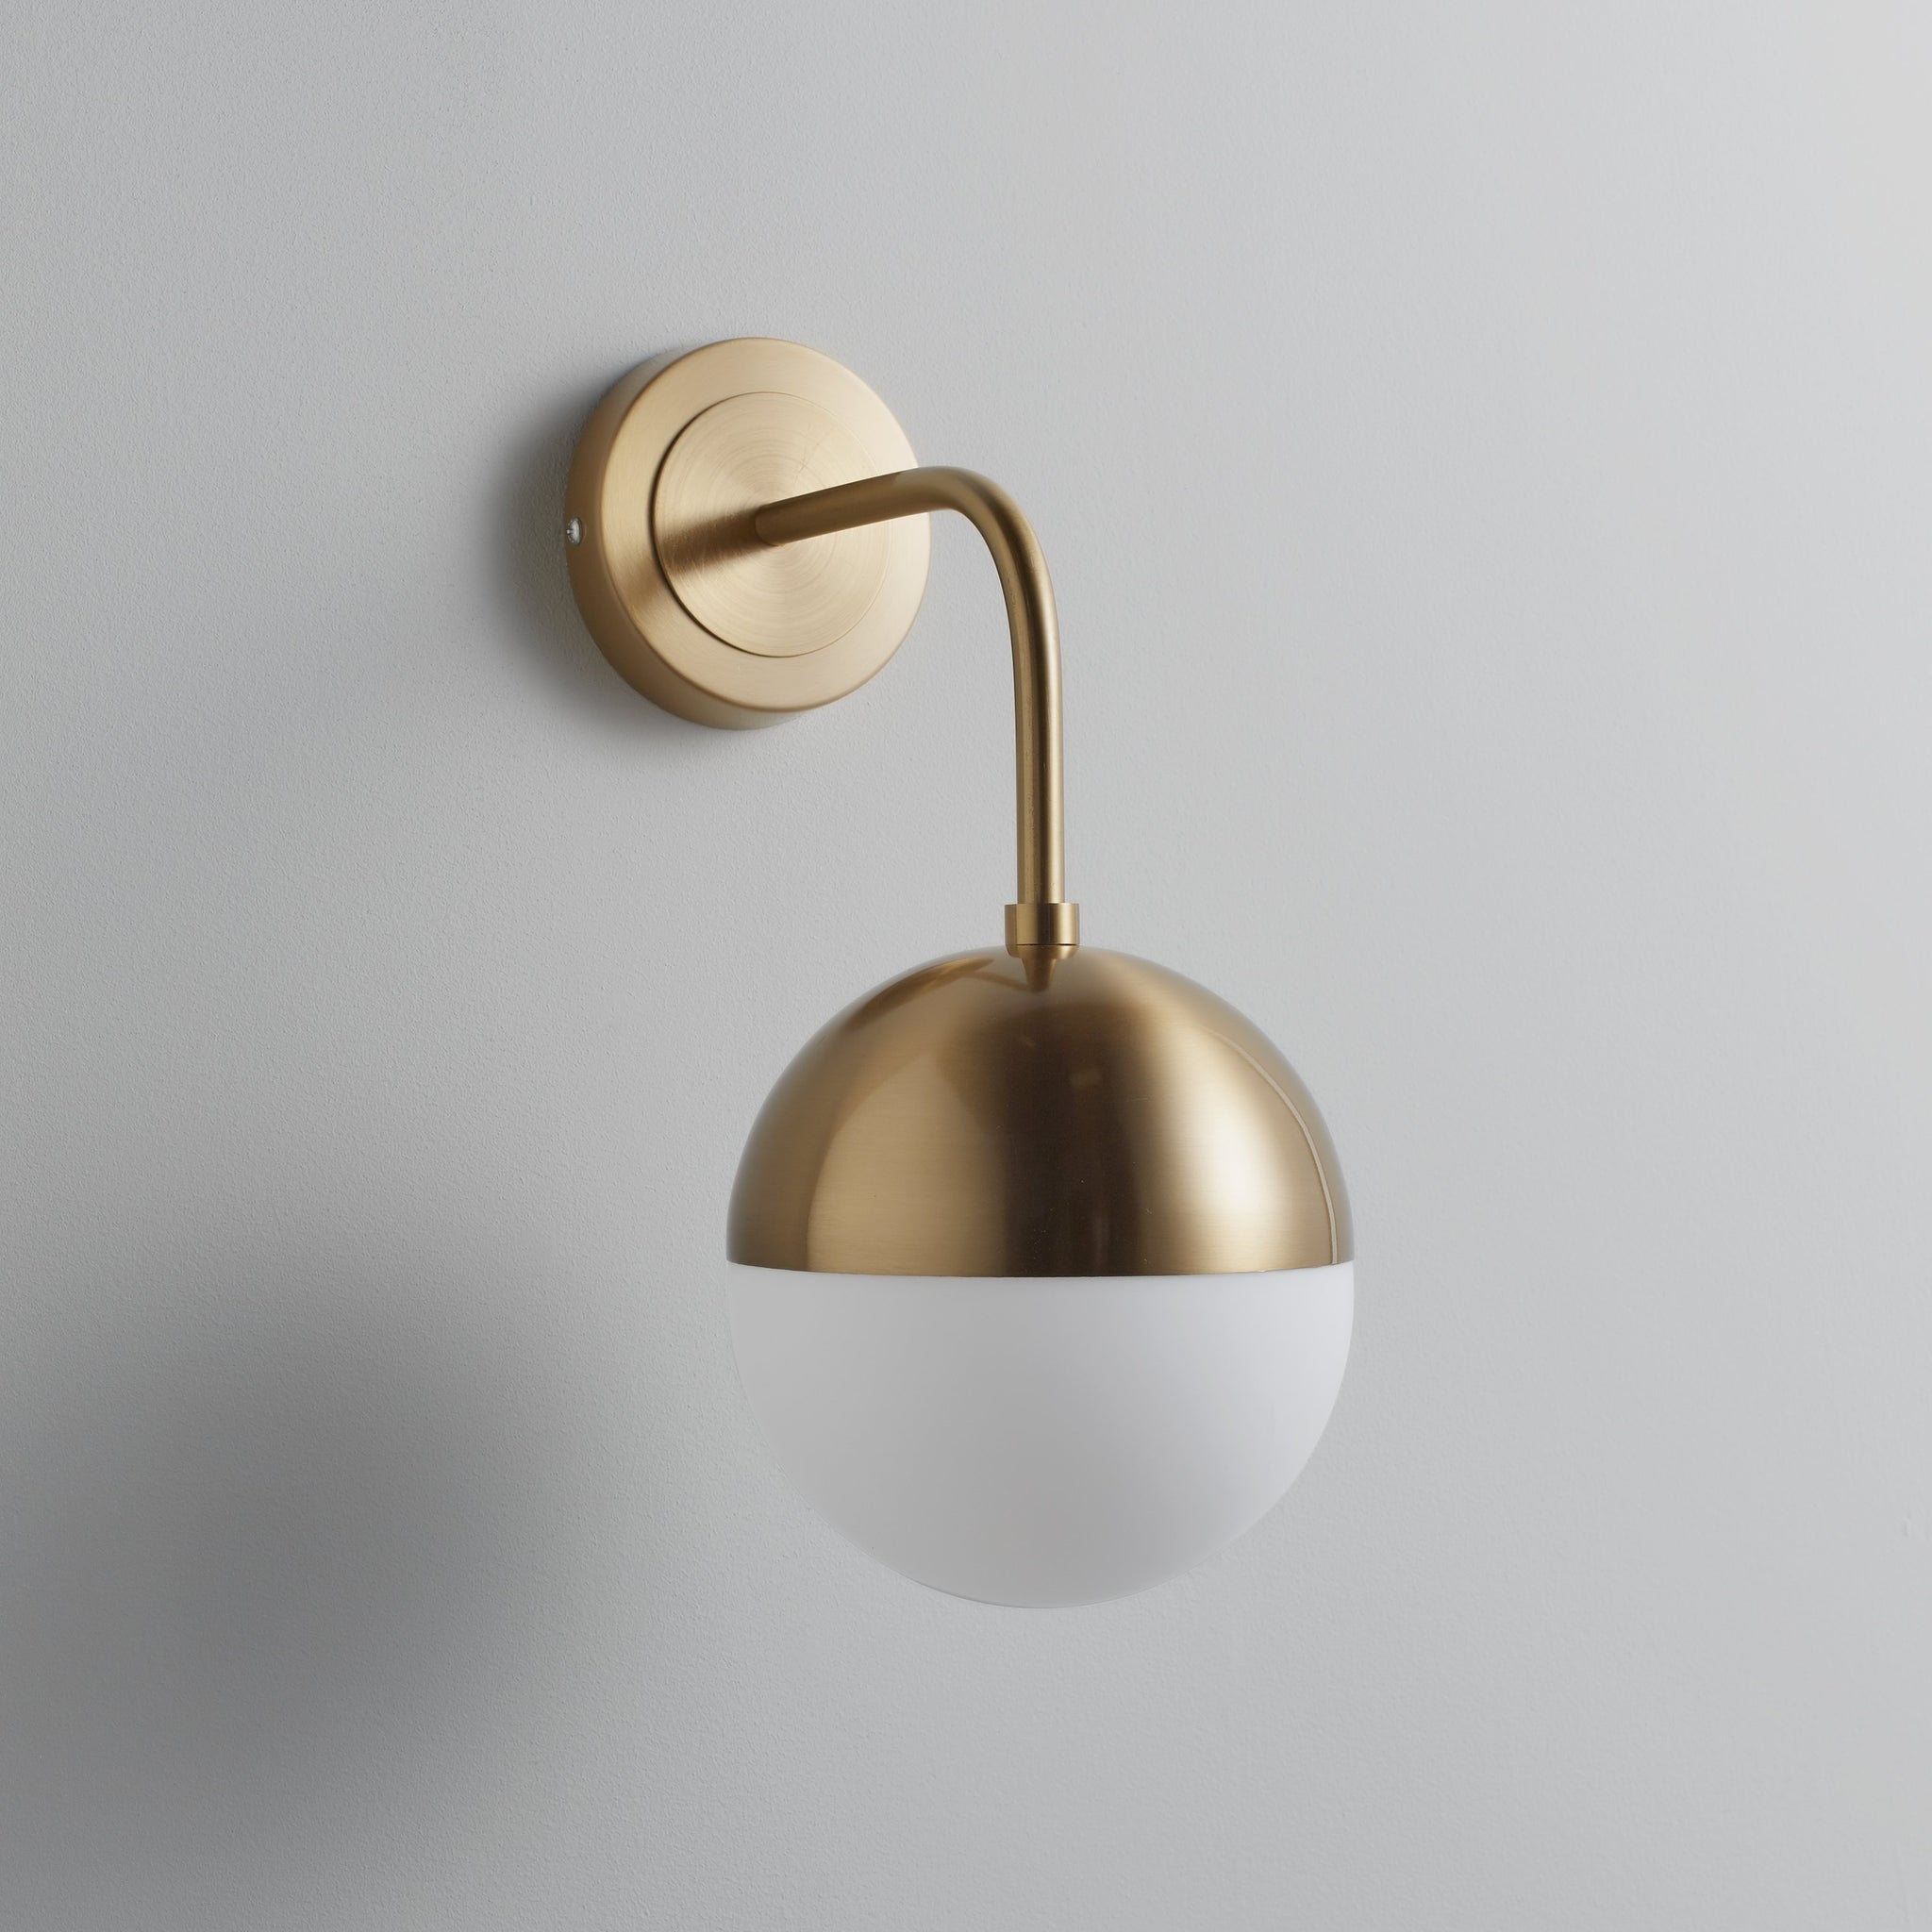 Mayfair Gold Wall Lamp - The Quirky Home Co